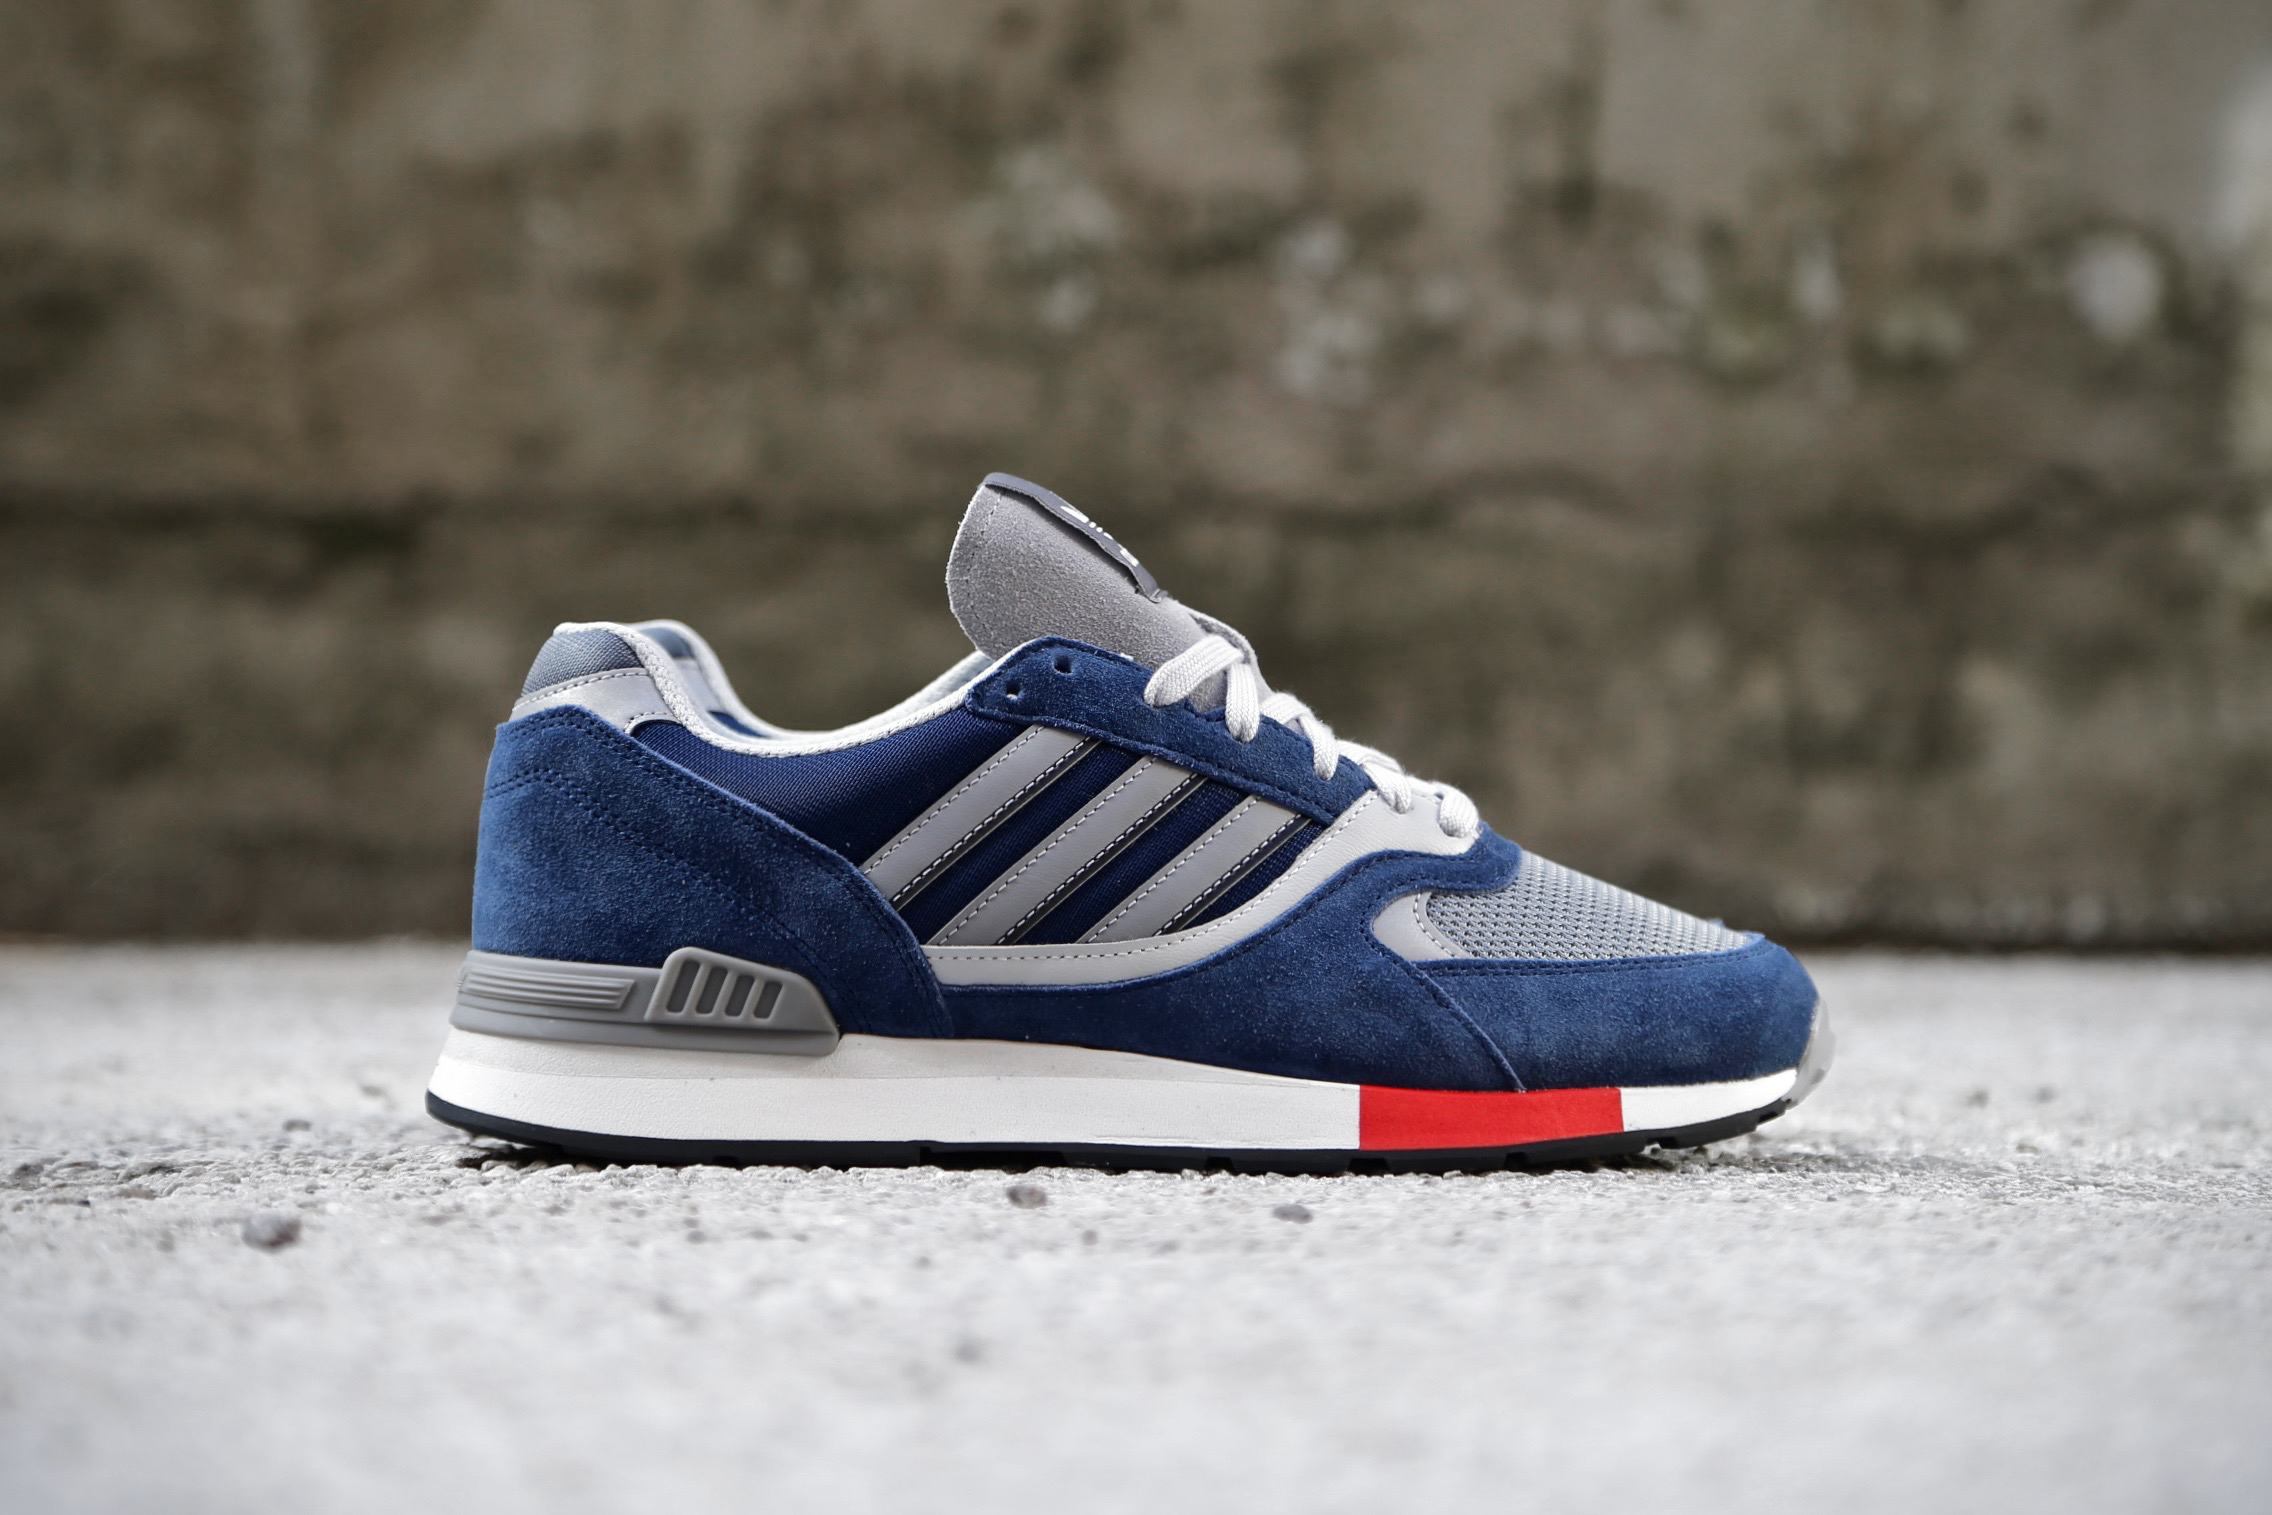 info for eaa82 baa7f adidas Originals Quesence – Collegiate Navy   Scarlet   Grey Two – STASP